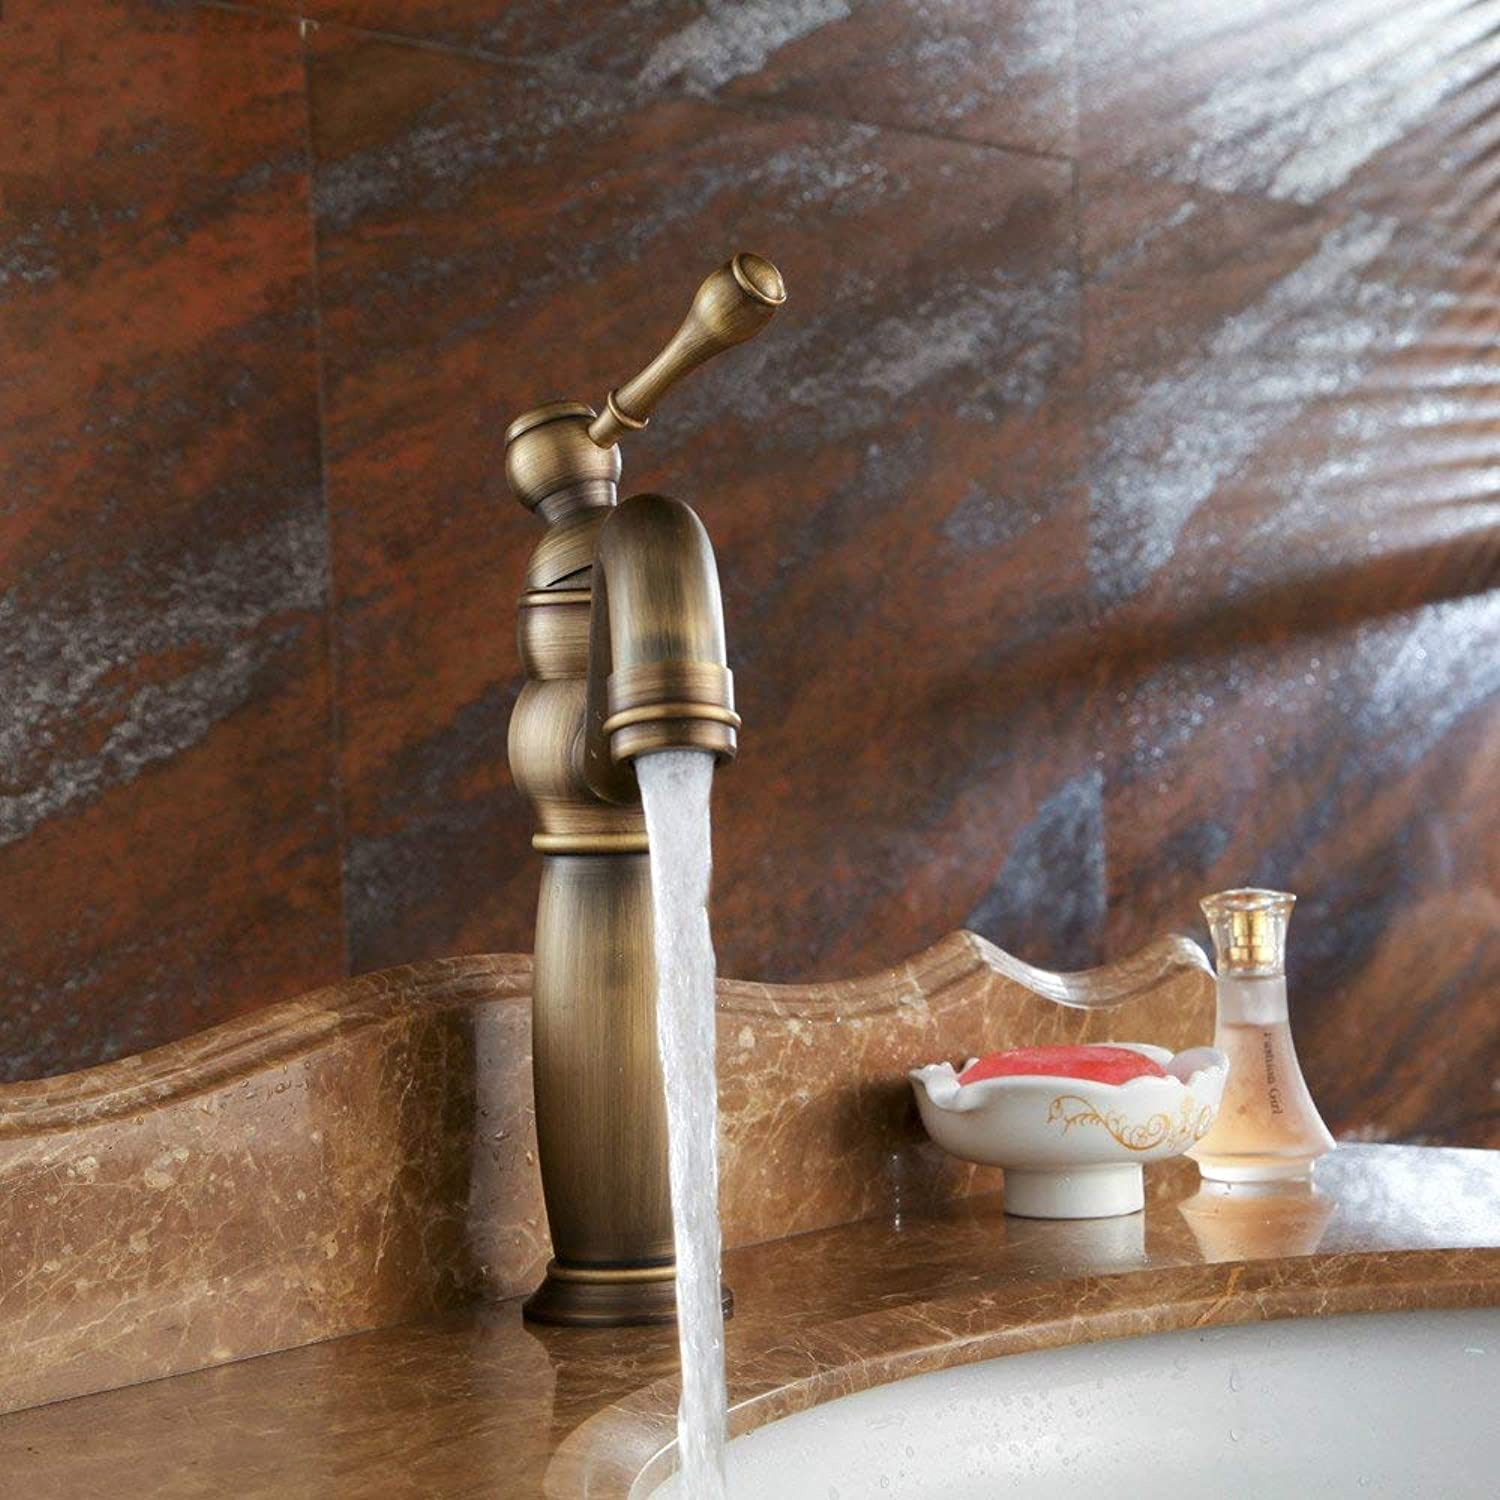 Oudan Basin Mixer Tap Bathroom Sink Faucet Antique copper basin surface basin 360 degree turn the COLD WATER FAUCET